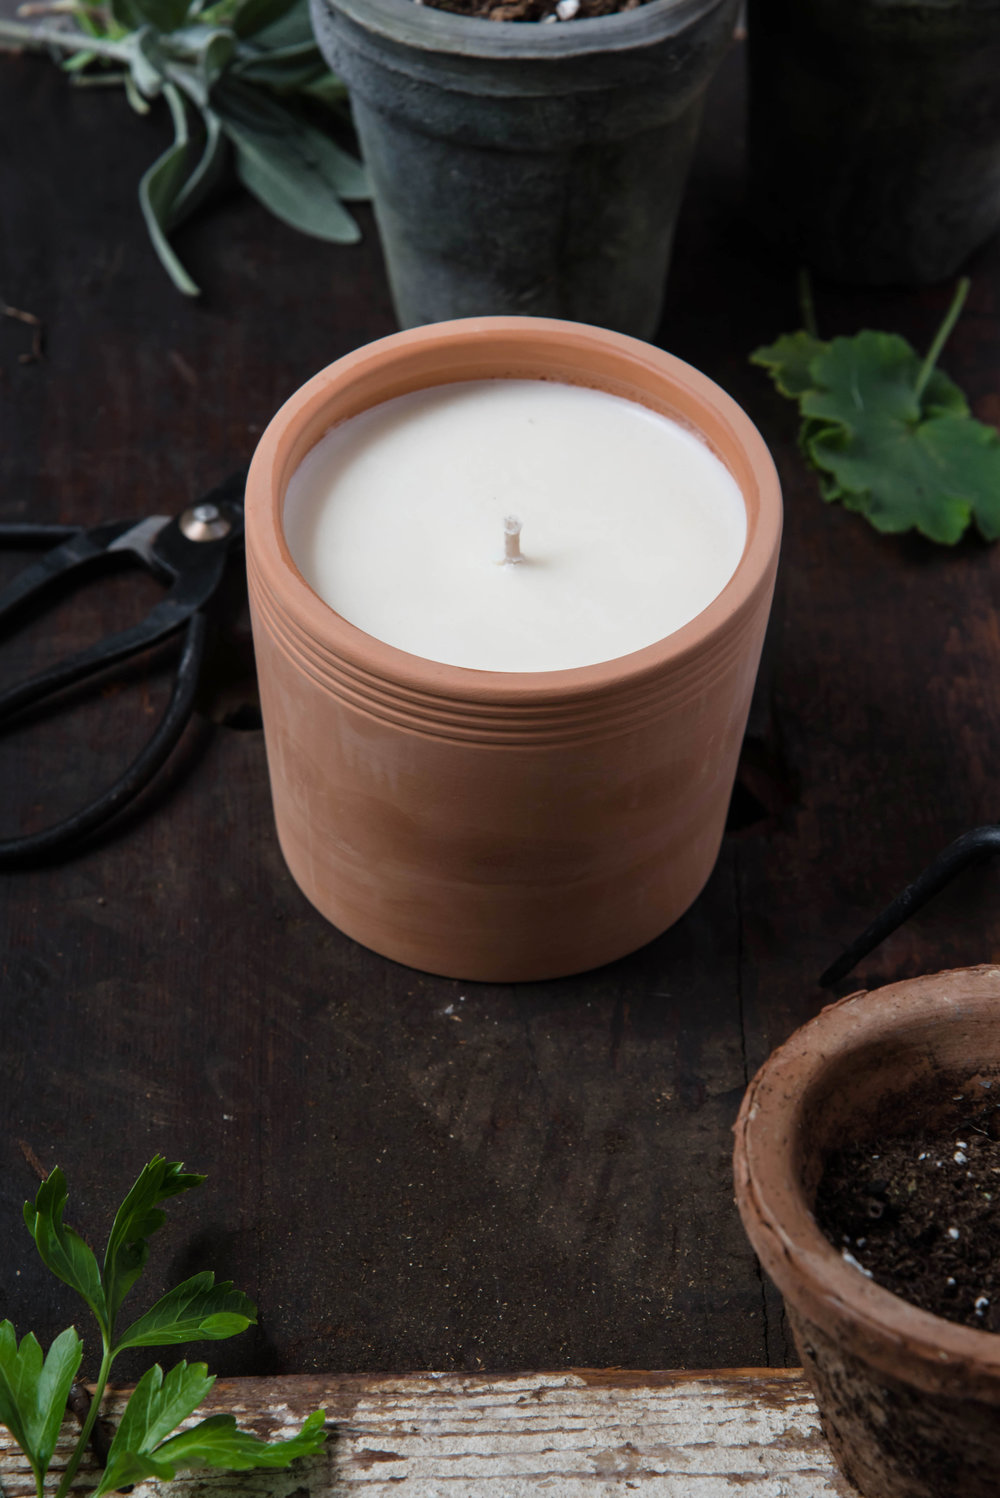 ROSE & IVY Journal Holiday Gift Guide For the Farmers Market Aficionado P.F Candle Co. Geranium